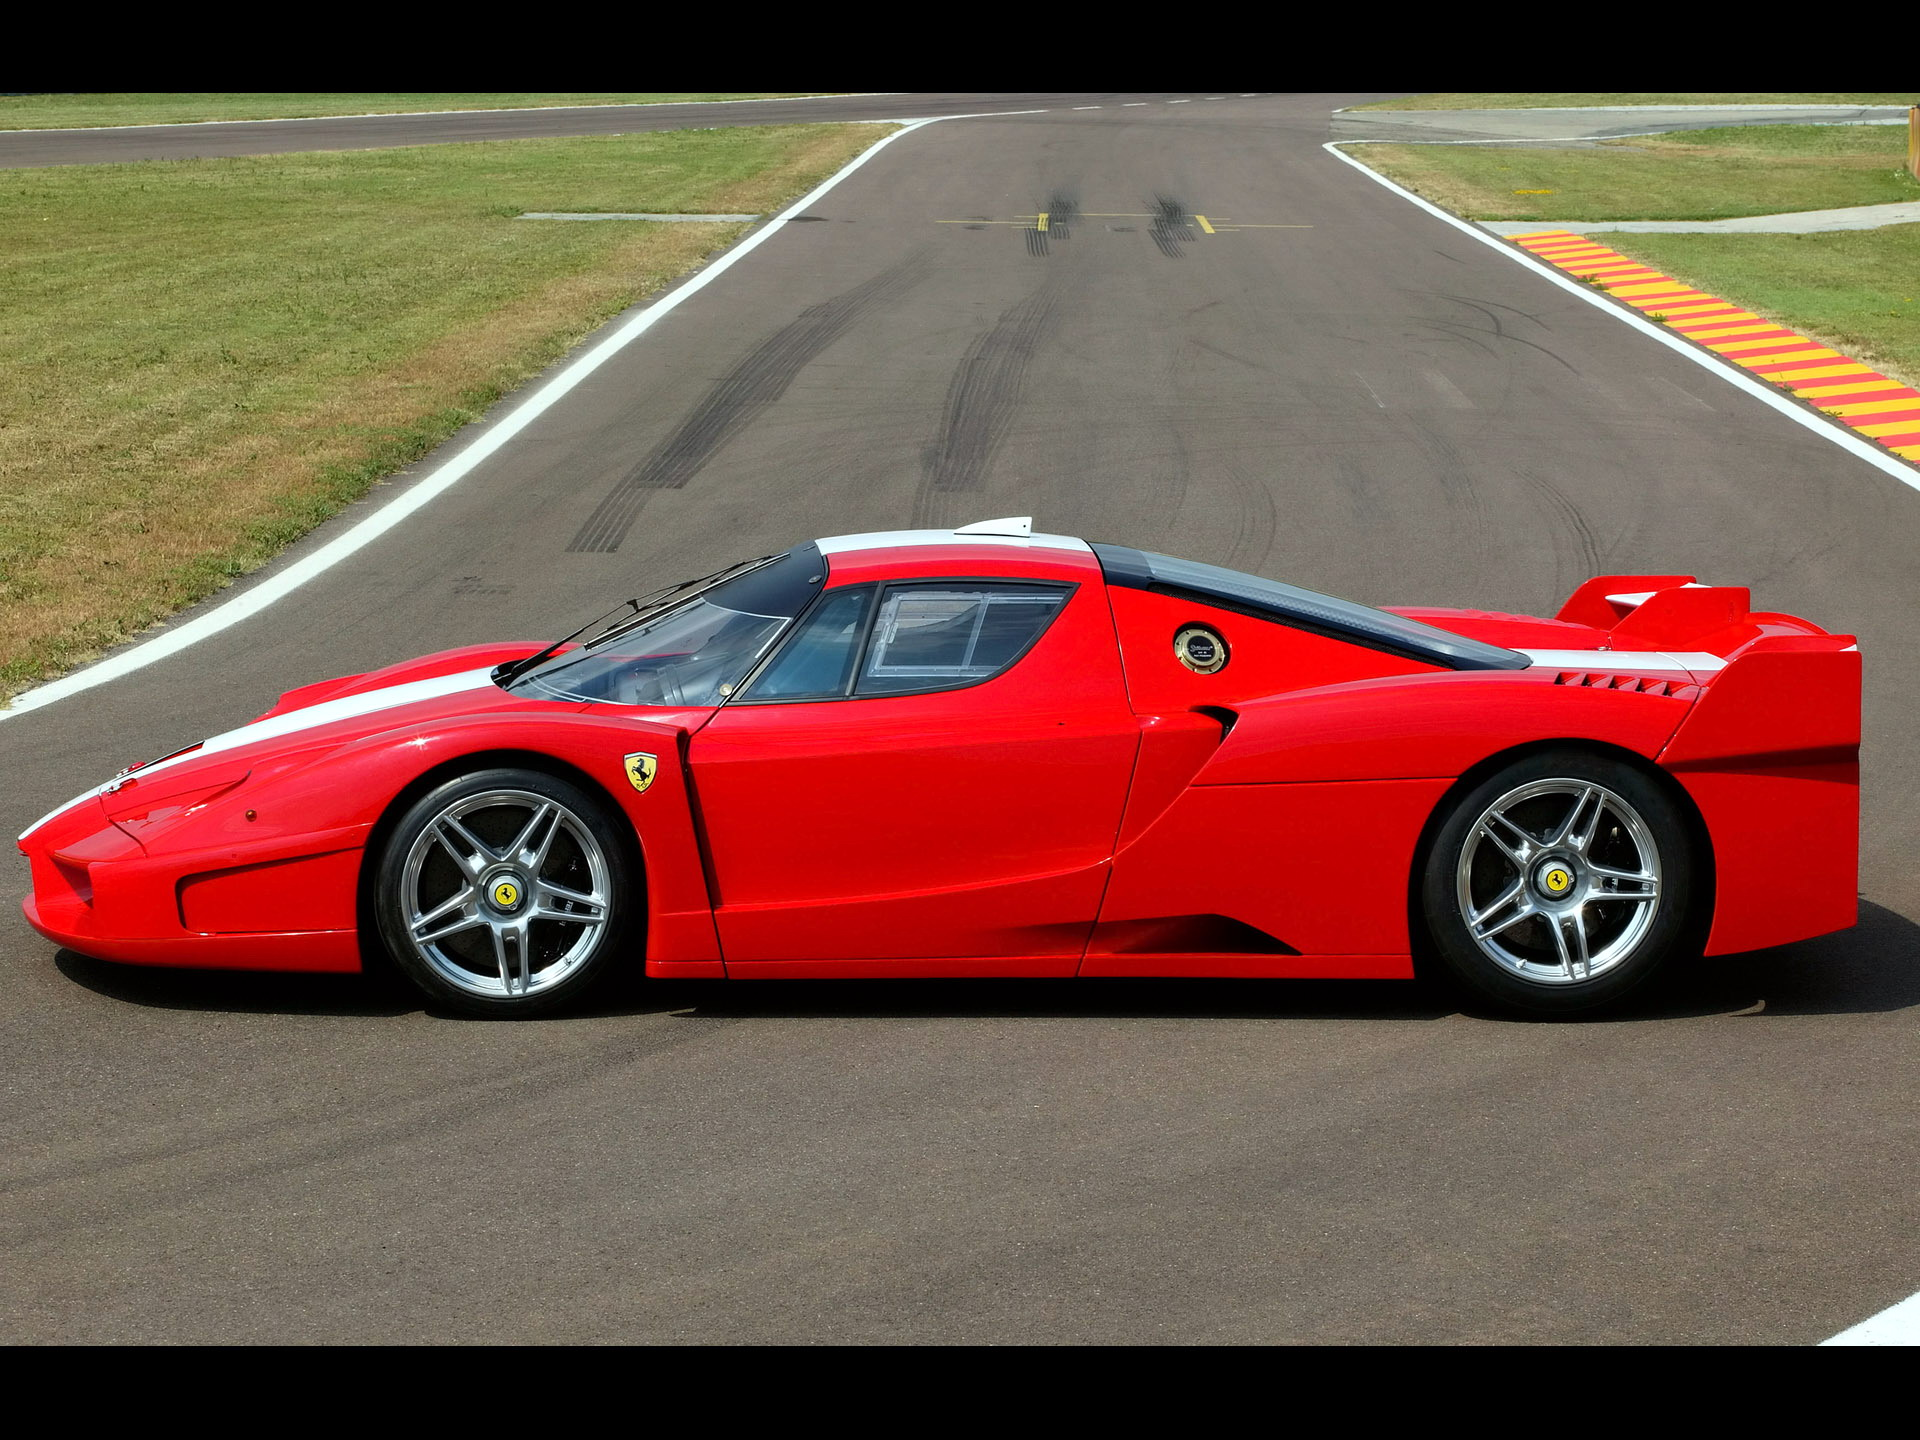 Racing Cars Ferrari Fxx Red 645016 Wallpaper wallpaper